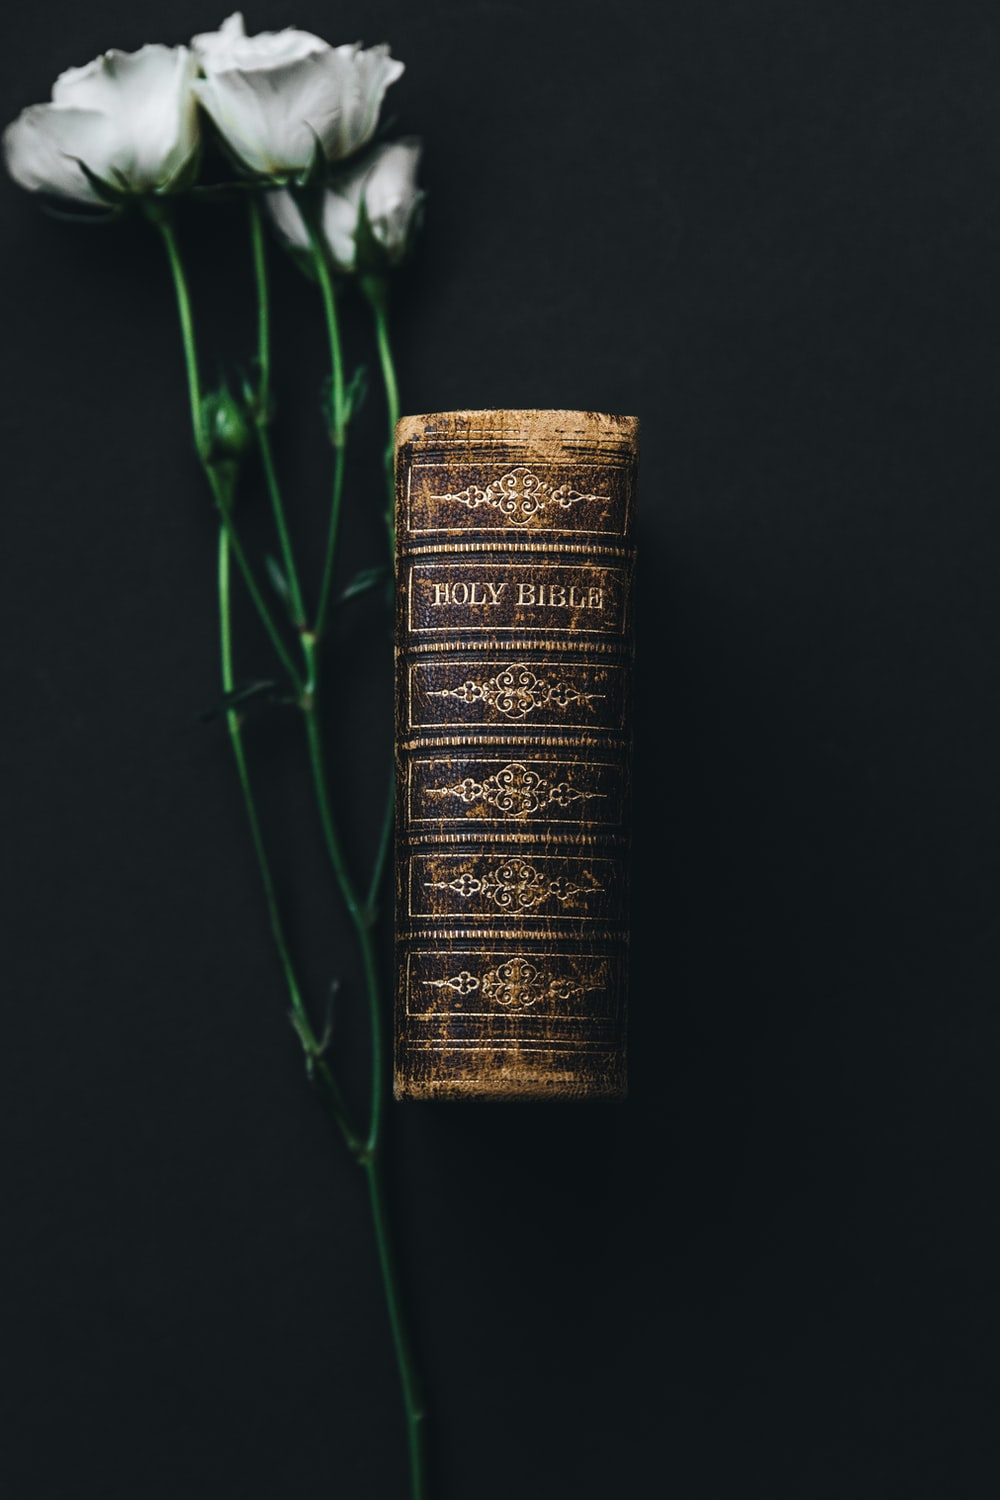 Holy Bible beside white rose